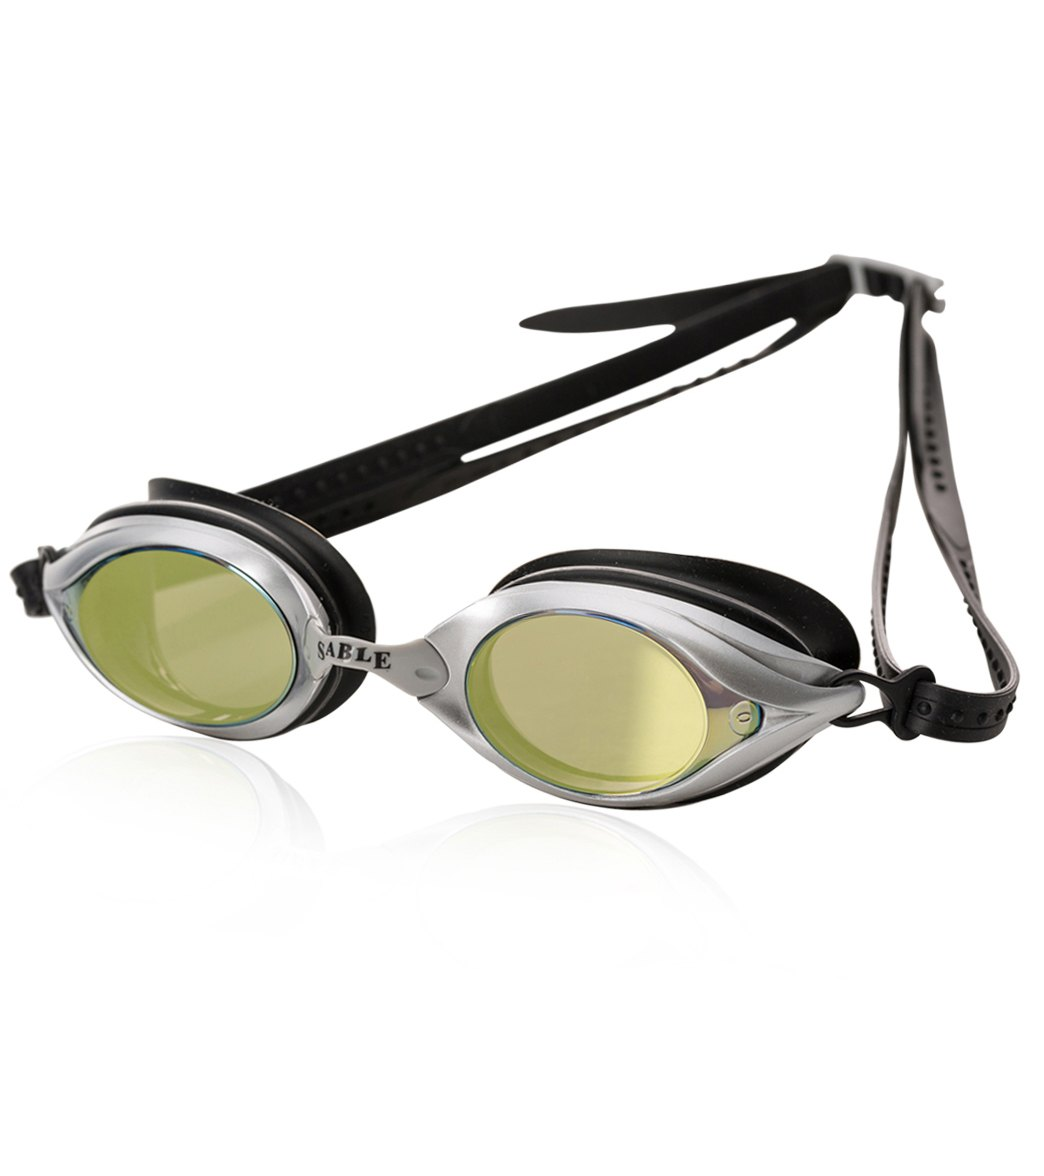 057390249f2 Sable Water Optics Competitive Mirrored Goggle at SwimOutlet.com ...